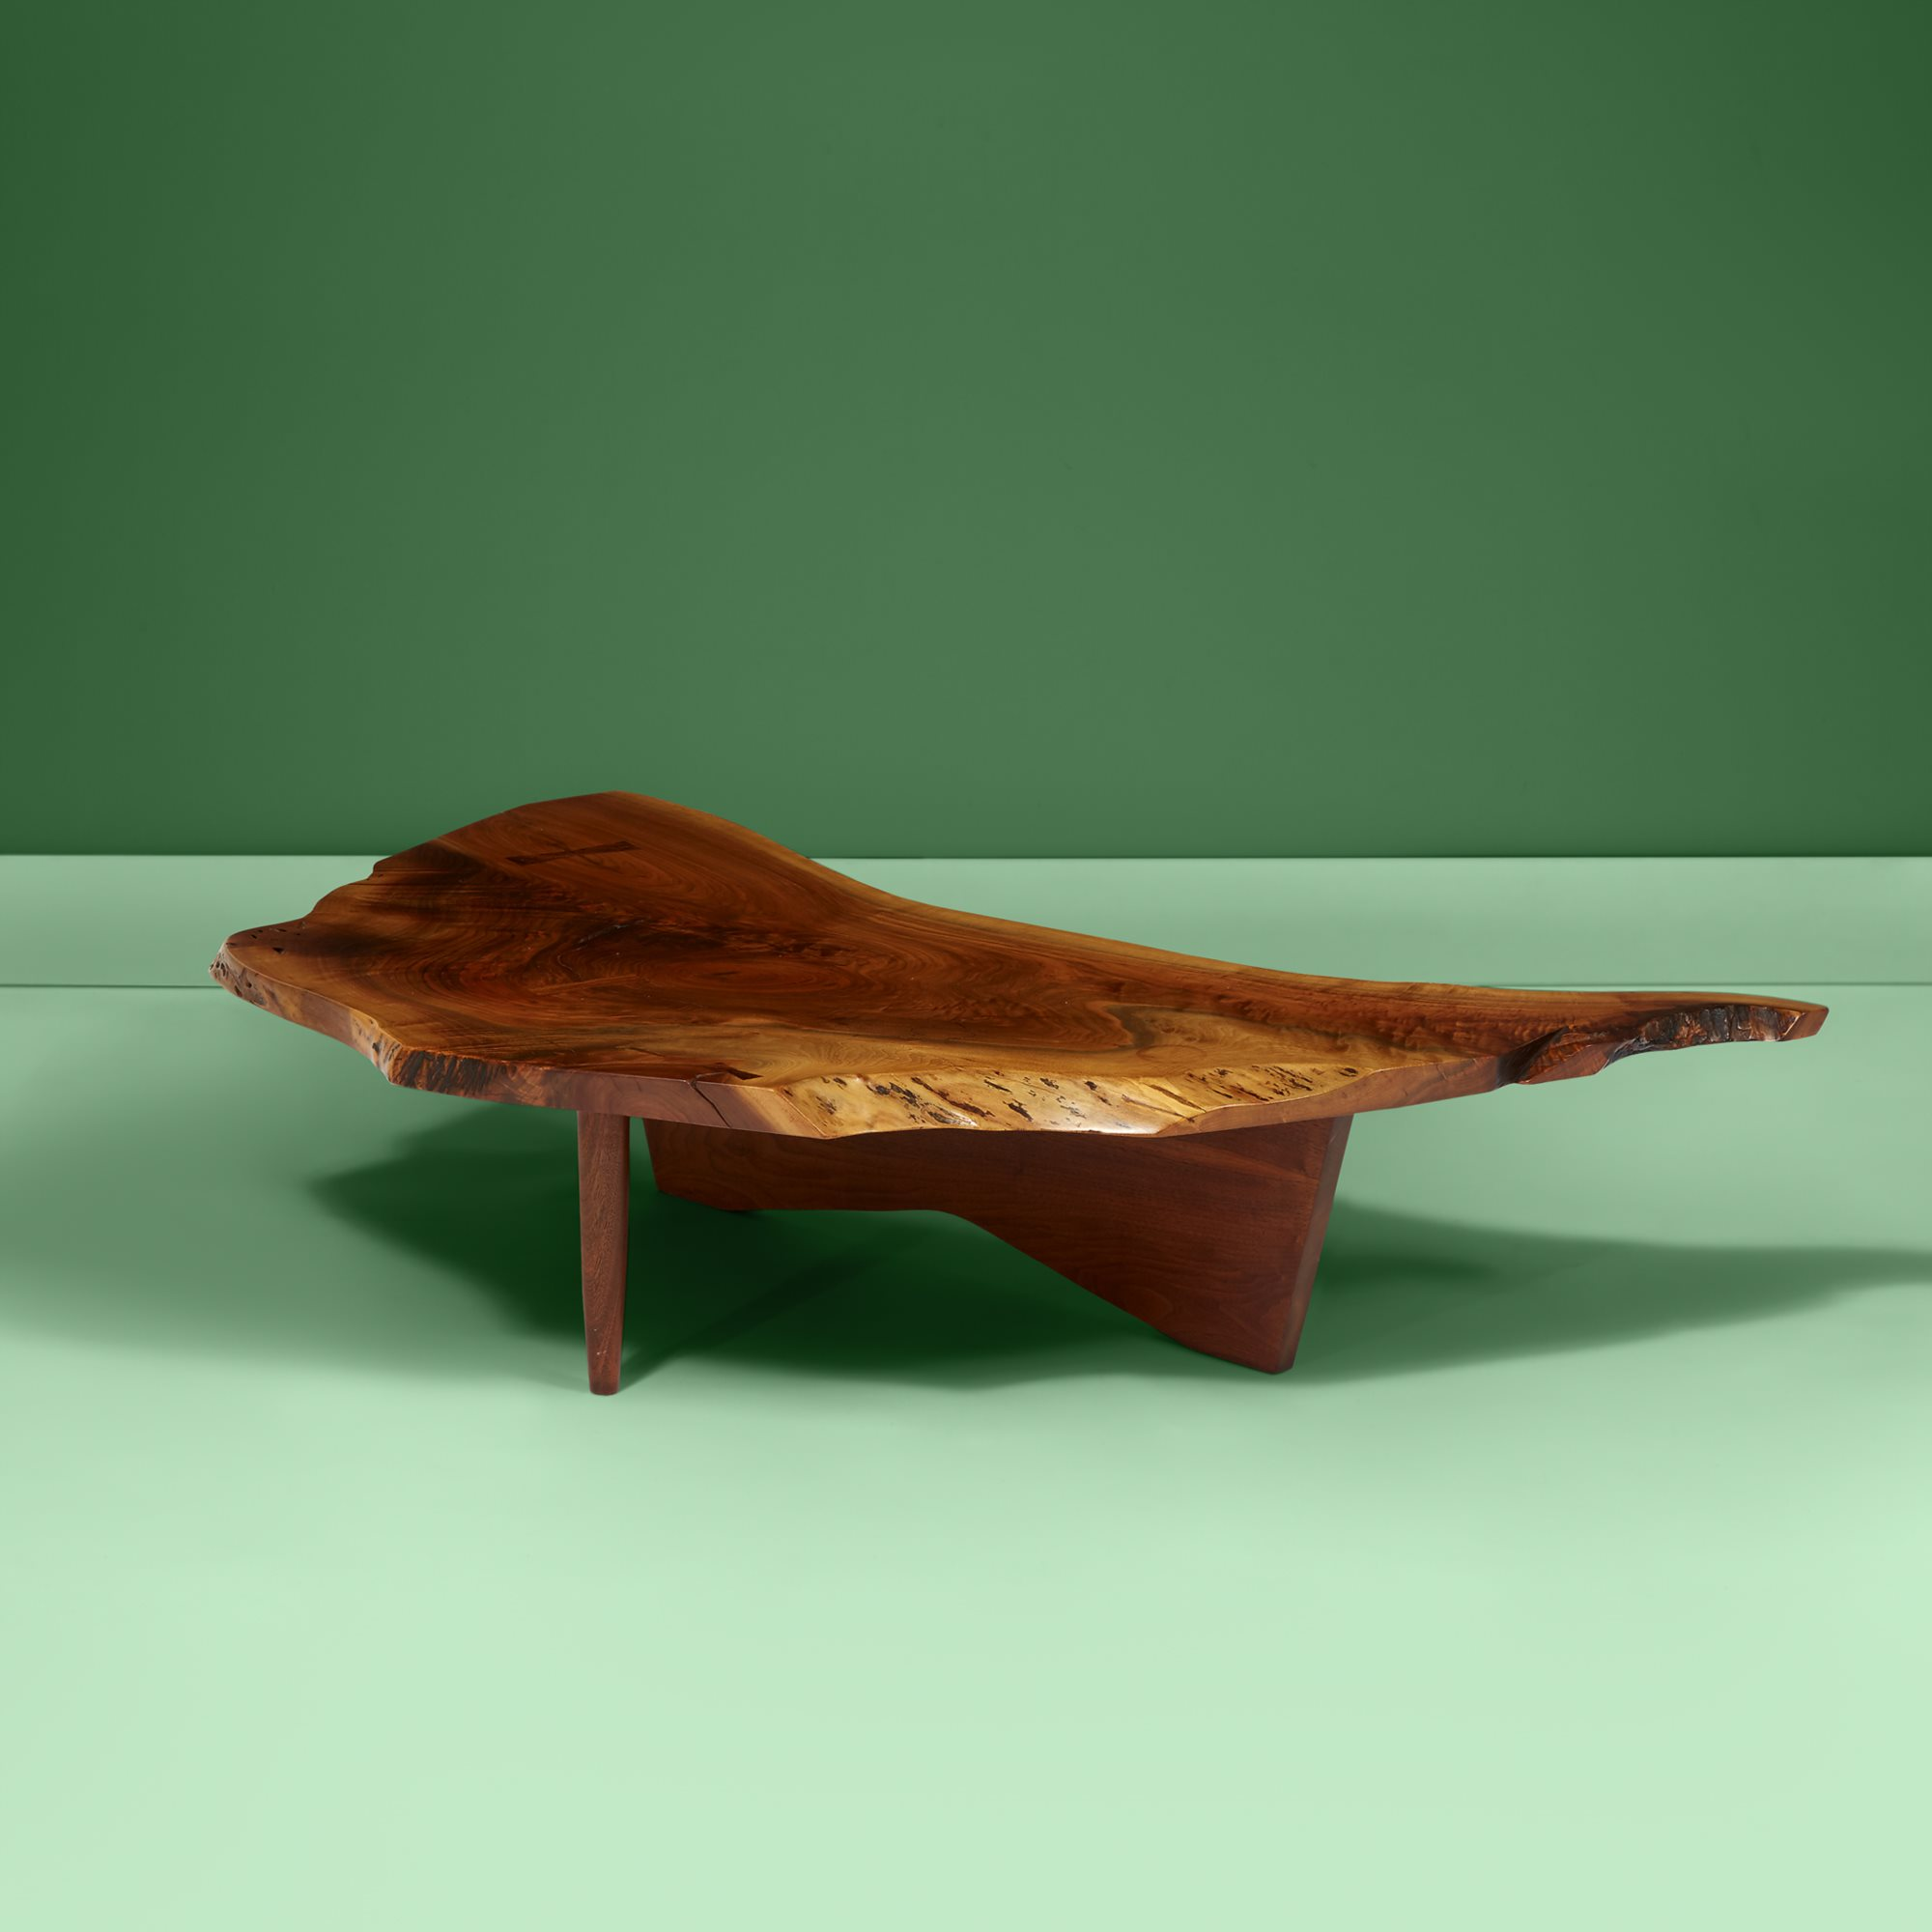 Lot 20  |  Special Conoid Coffee Table, New Hope, Pennsylvania, 1970, $20,000-30,000